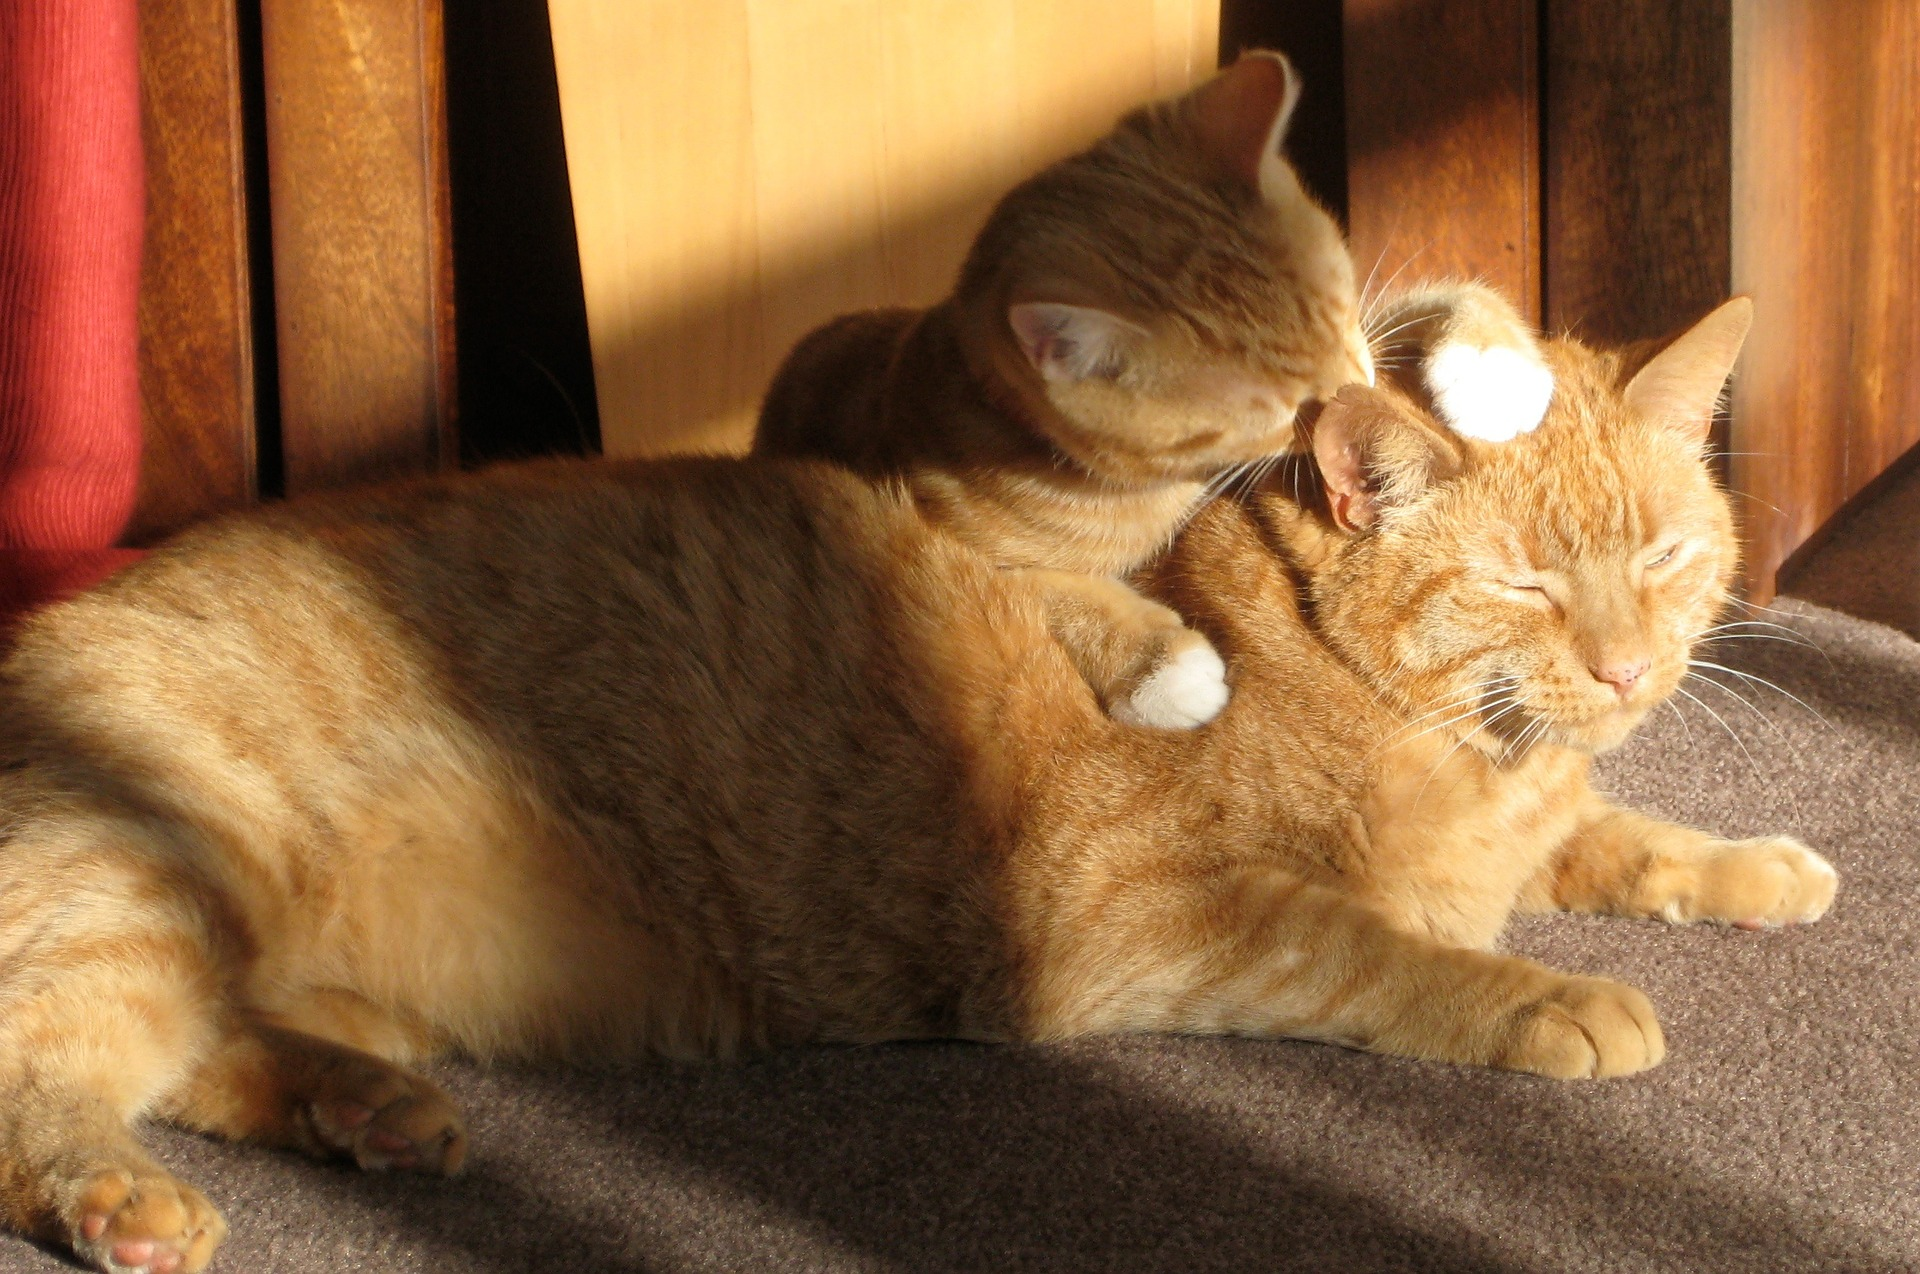 two-ginger-cats-650546_1920